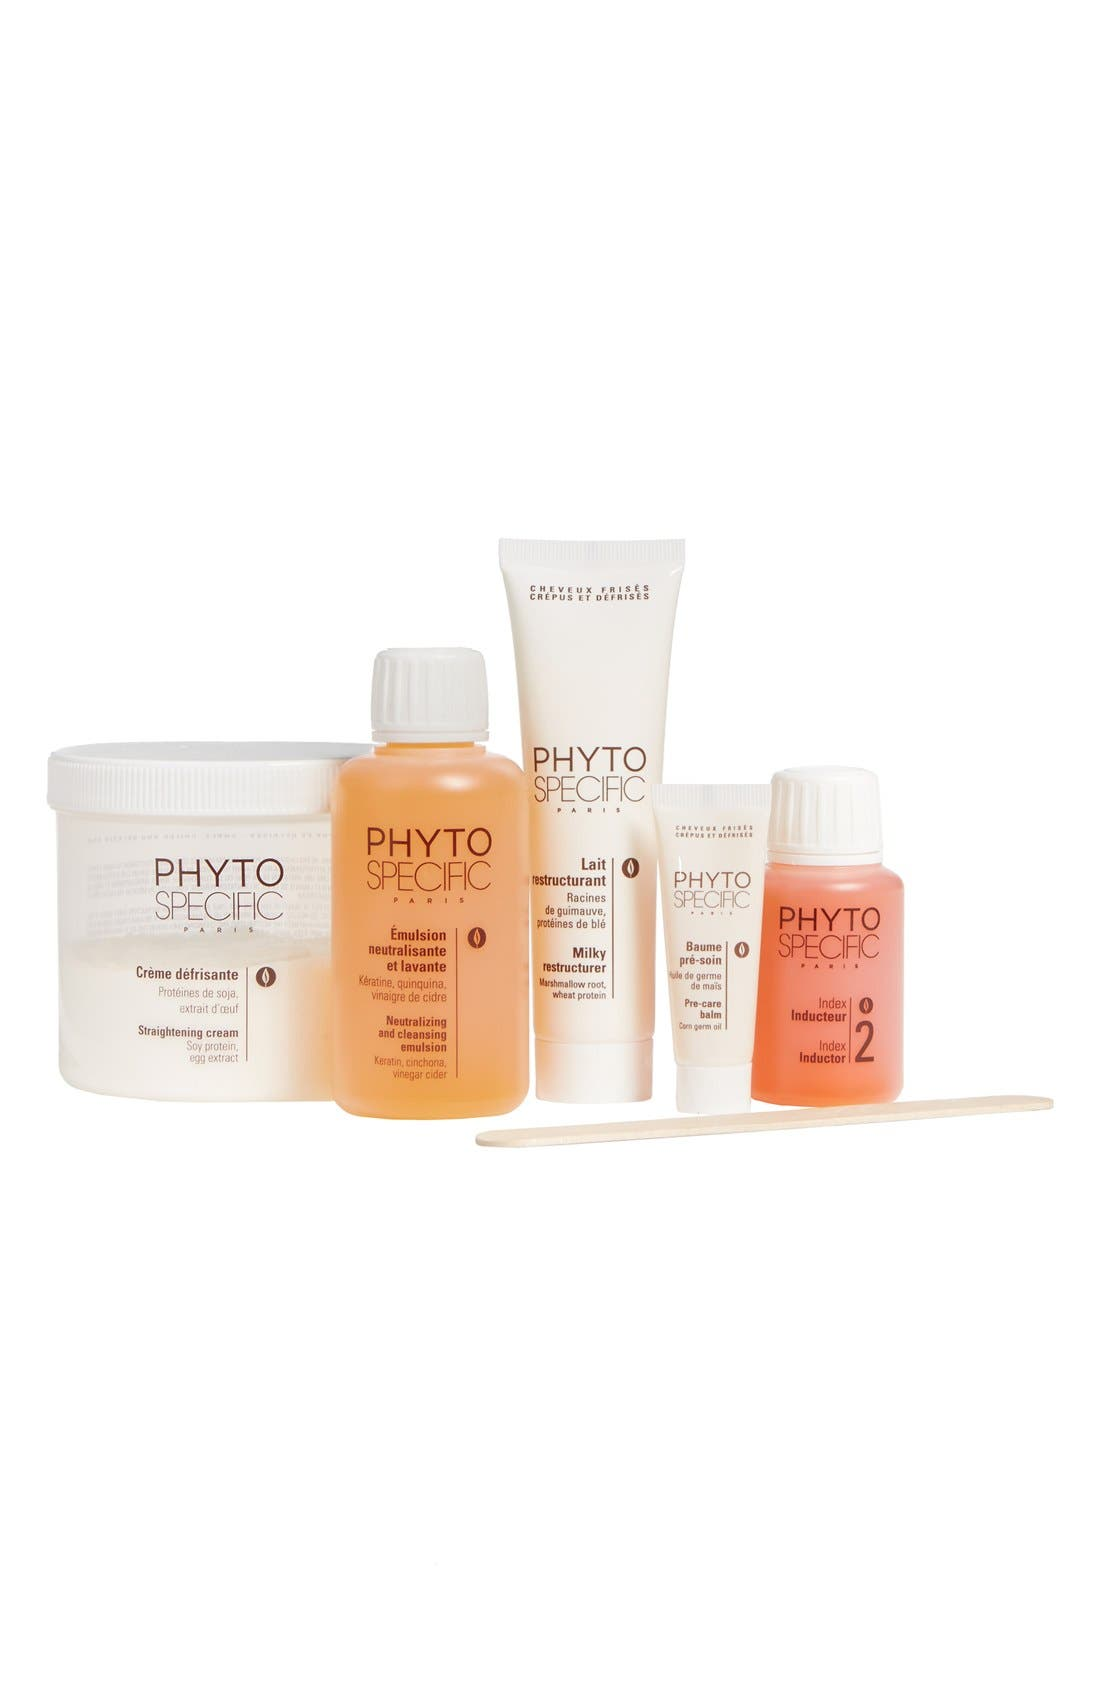 PhytoSpecific PhytoRelaxer Index 2 Treatment Set for Normal, Thick or Resistant Hair, Main, color, 000